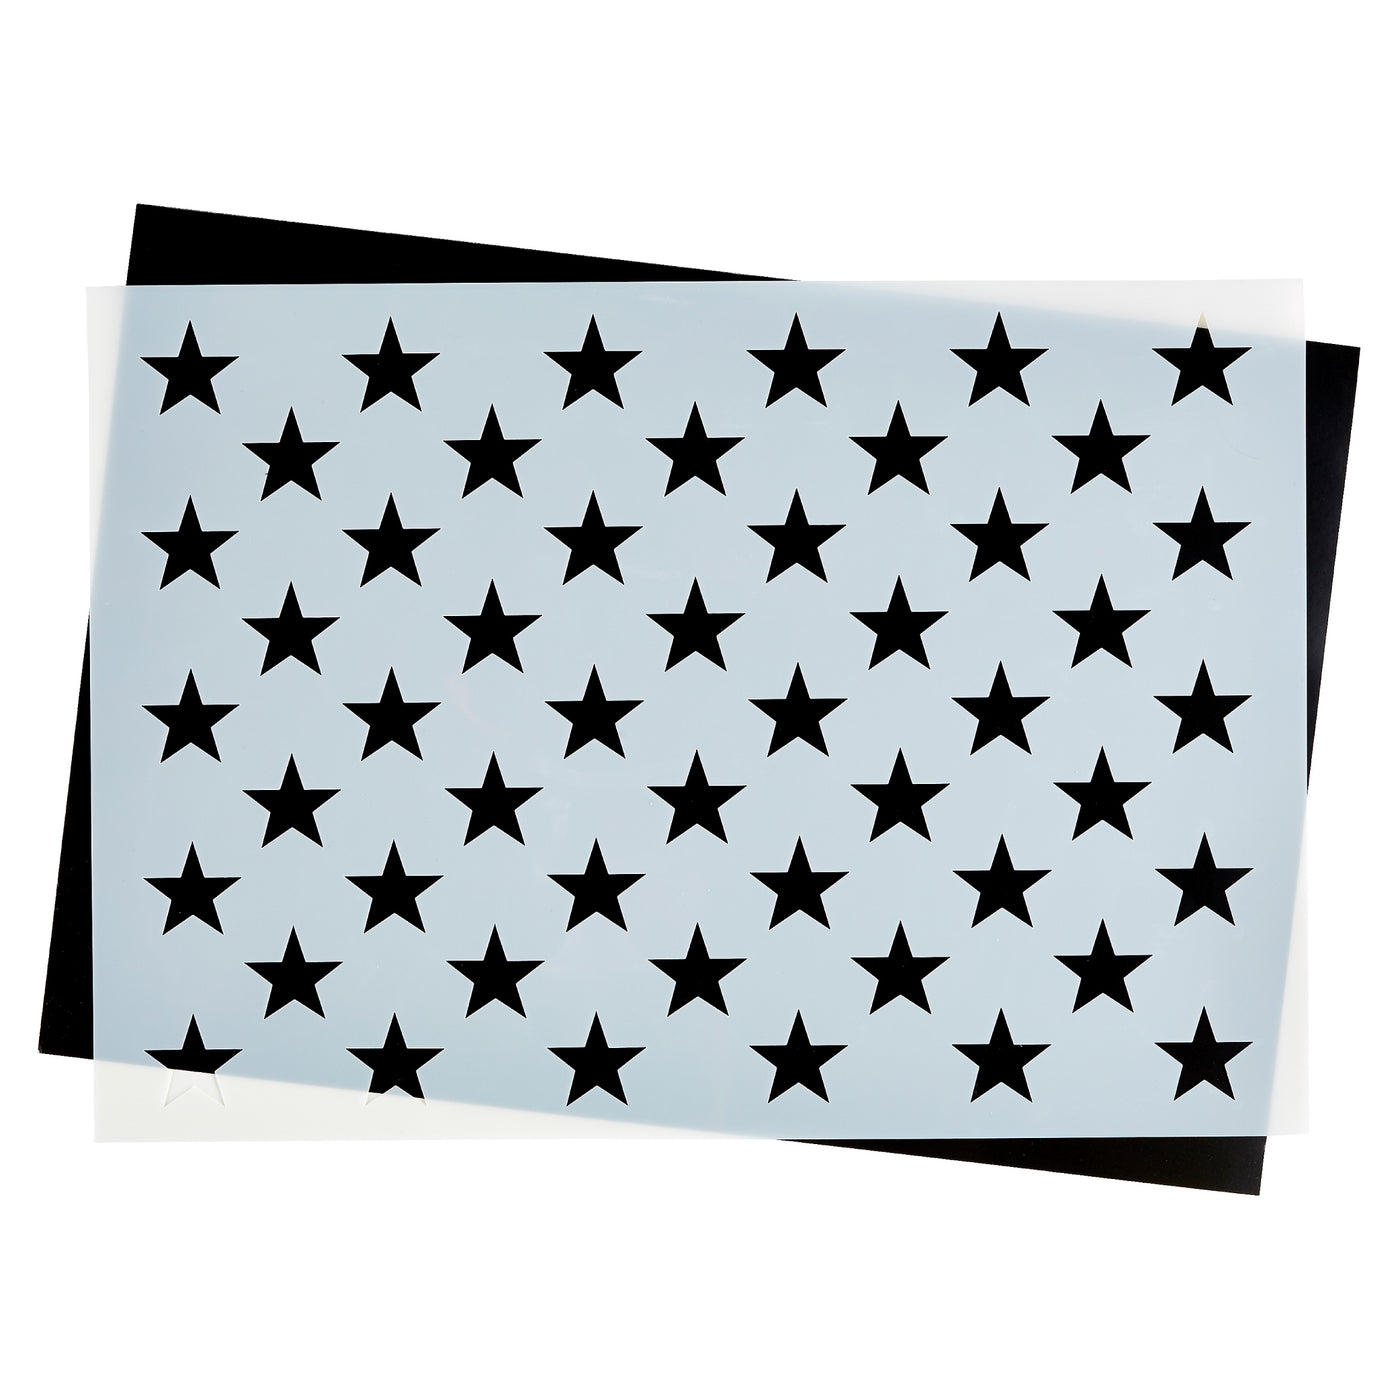 photo regarding American Flag Star Stencil Printable referred to as Star Industry Templates for Craftsmen of AMERICAN Picket Flags